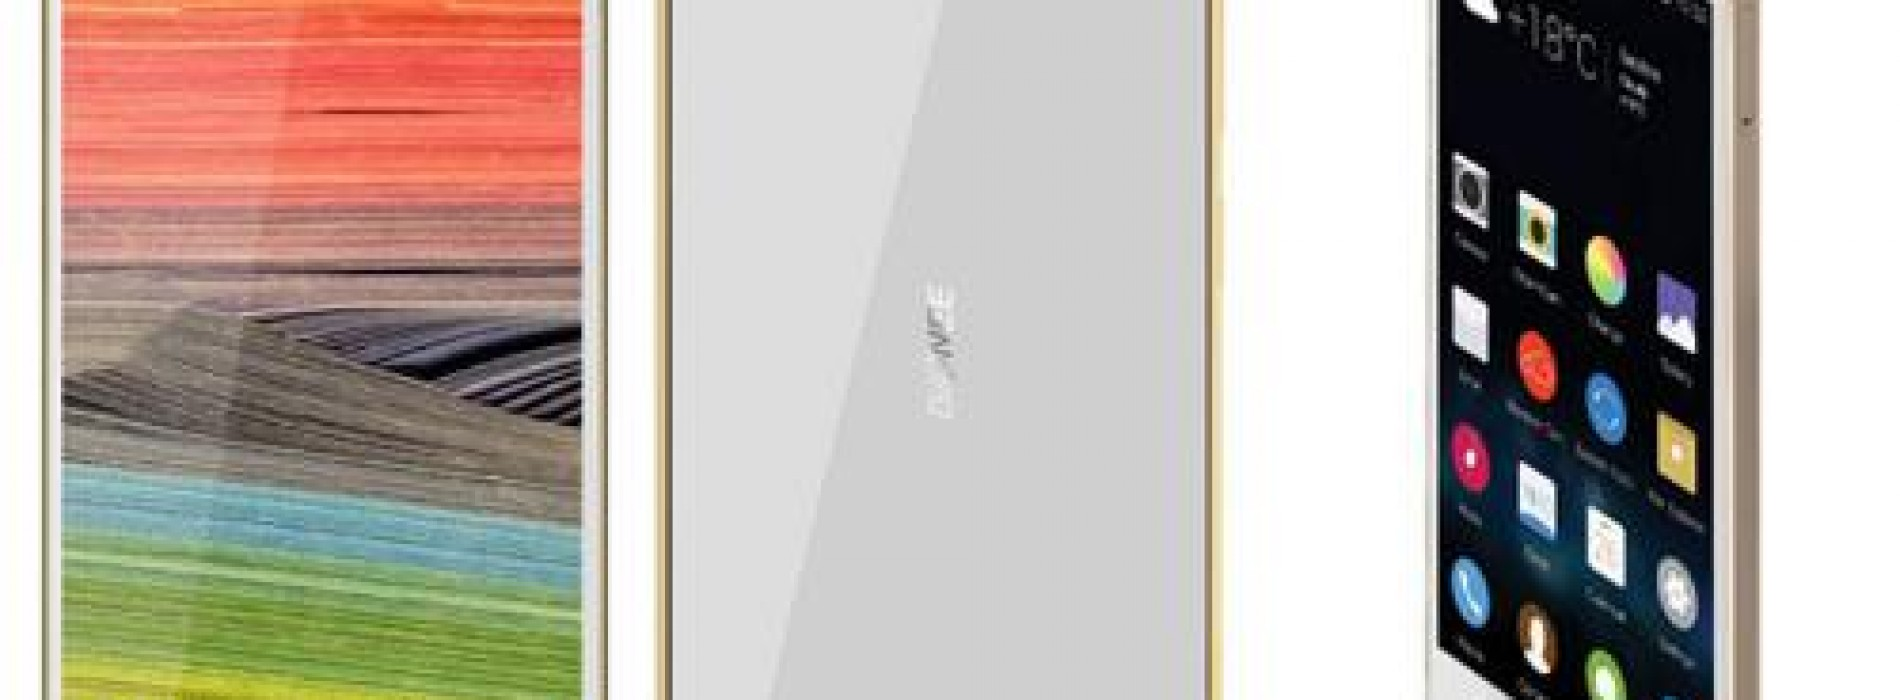 Gionee shows off the world's slimmest smartphone at MWC